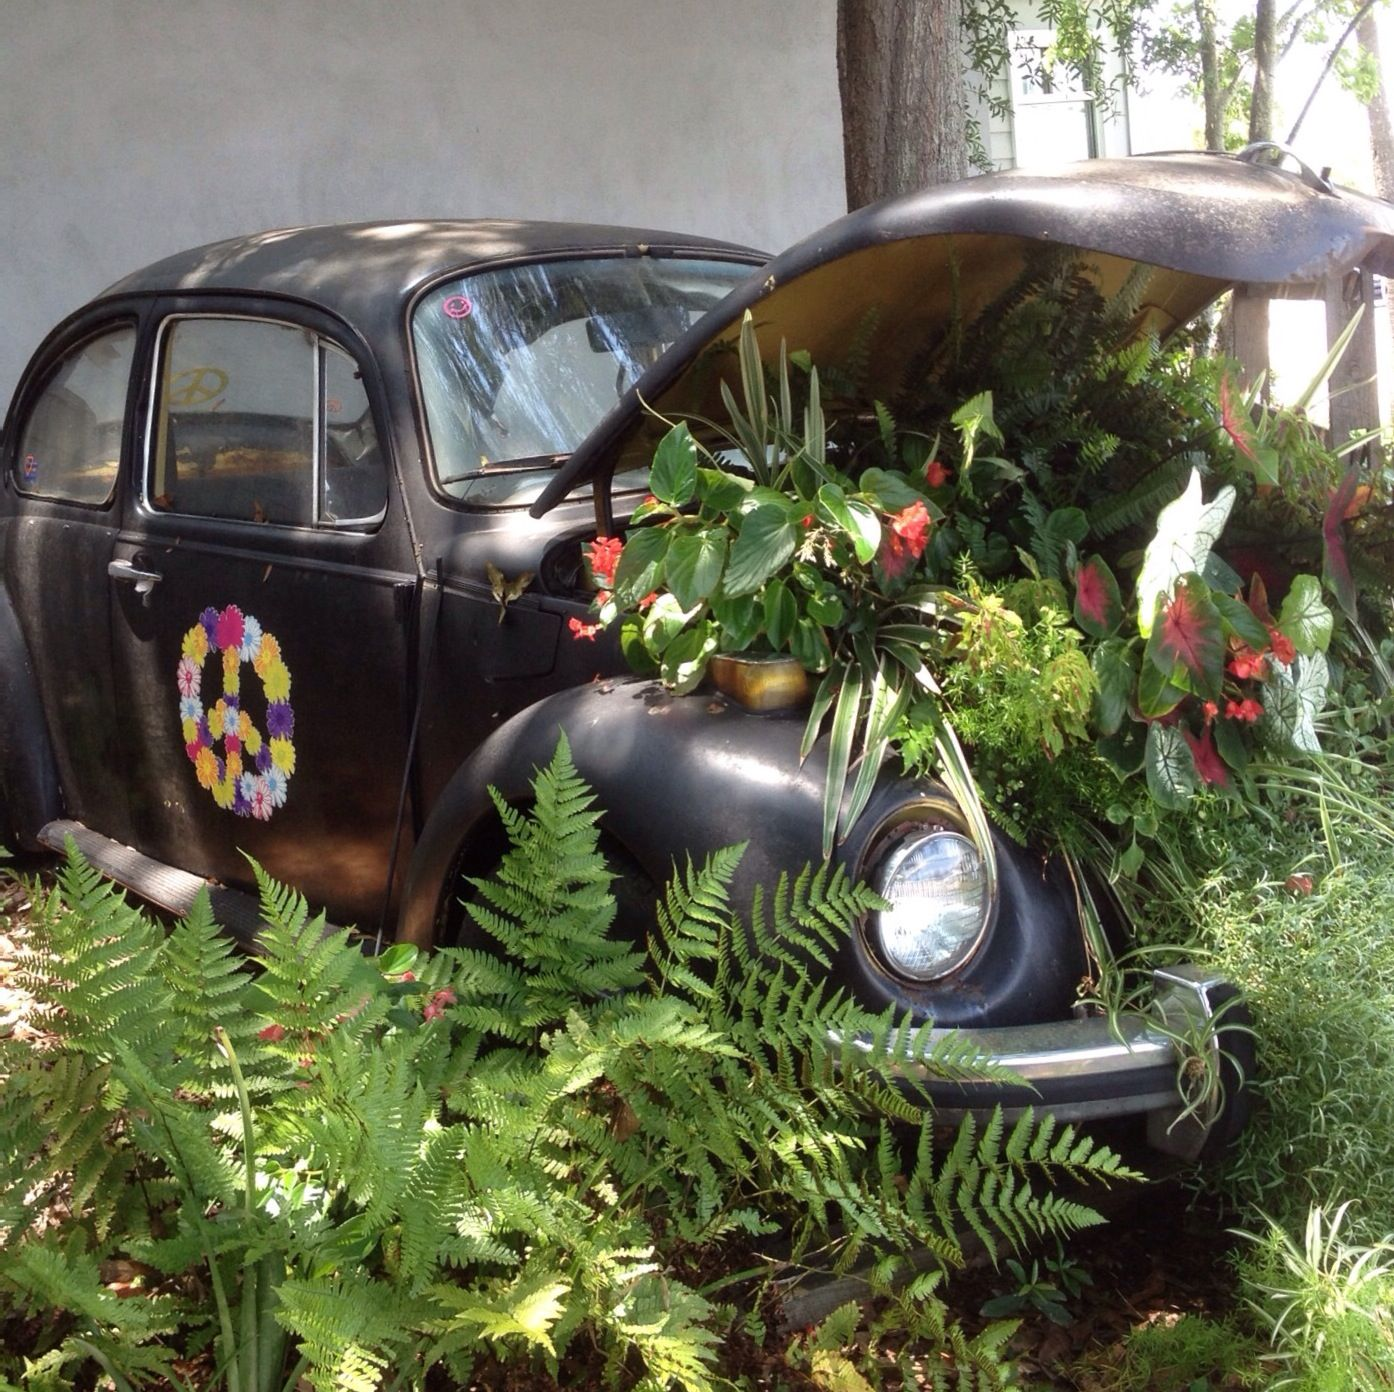 Volkswagen Mt Pleasant >> Cool Volkswagen Beetle as a garden decoration at The Pickled Palate in Mt. Pleasant, SC ...